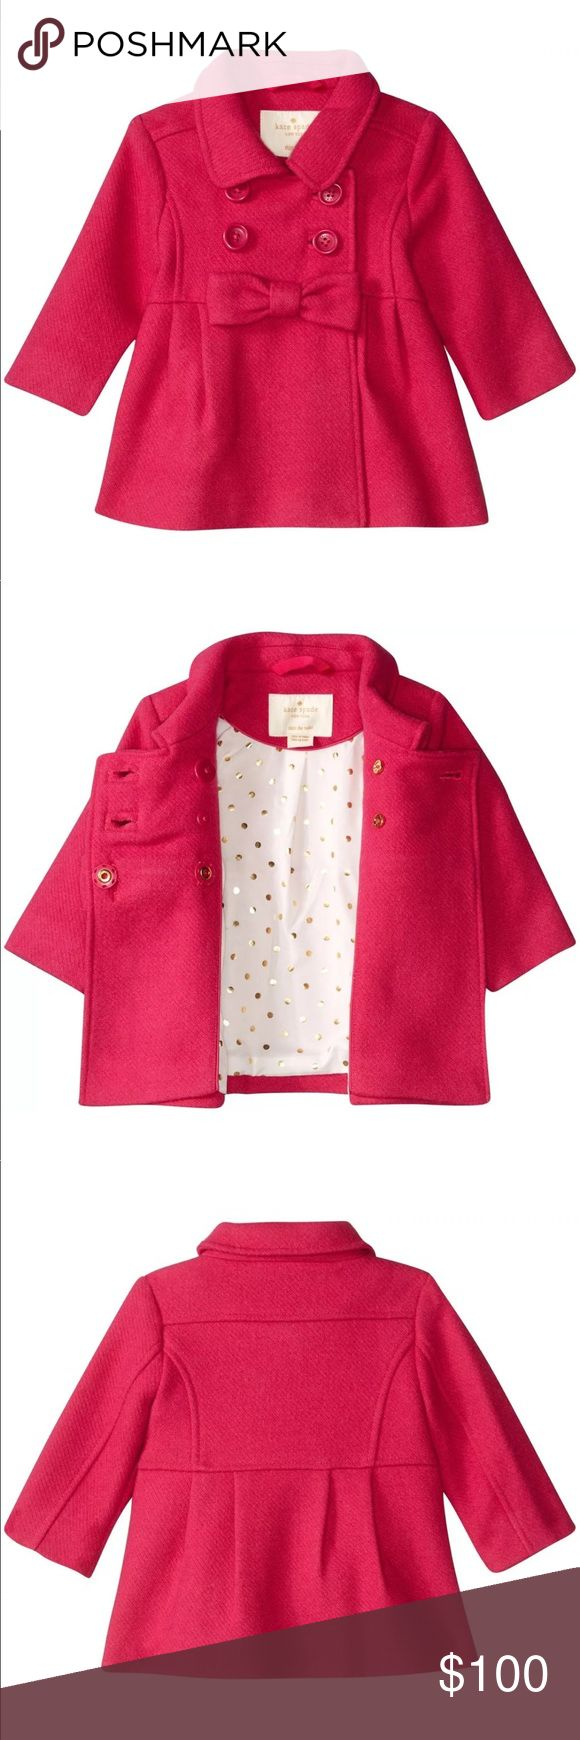 Kate Spade Pink Girls Peacoat Coat BRAND new with tags kate spade hot pink pea coat. Great looking and very stylish. NWT kate spade Jackets & Coats Pea Coats